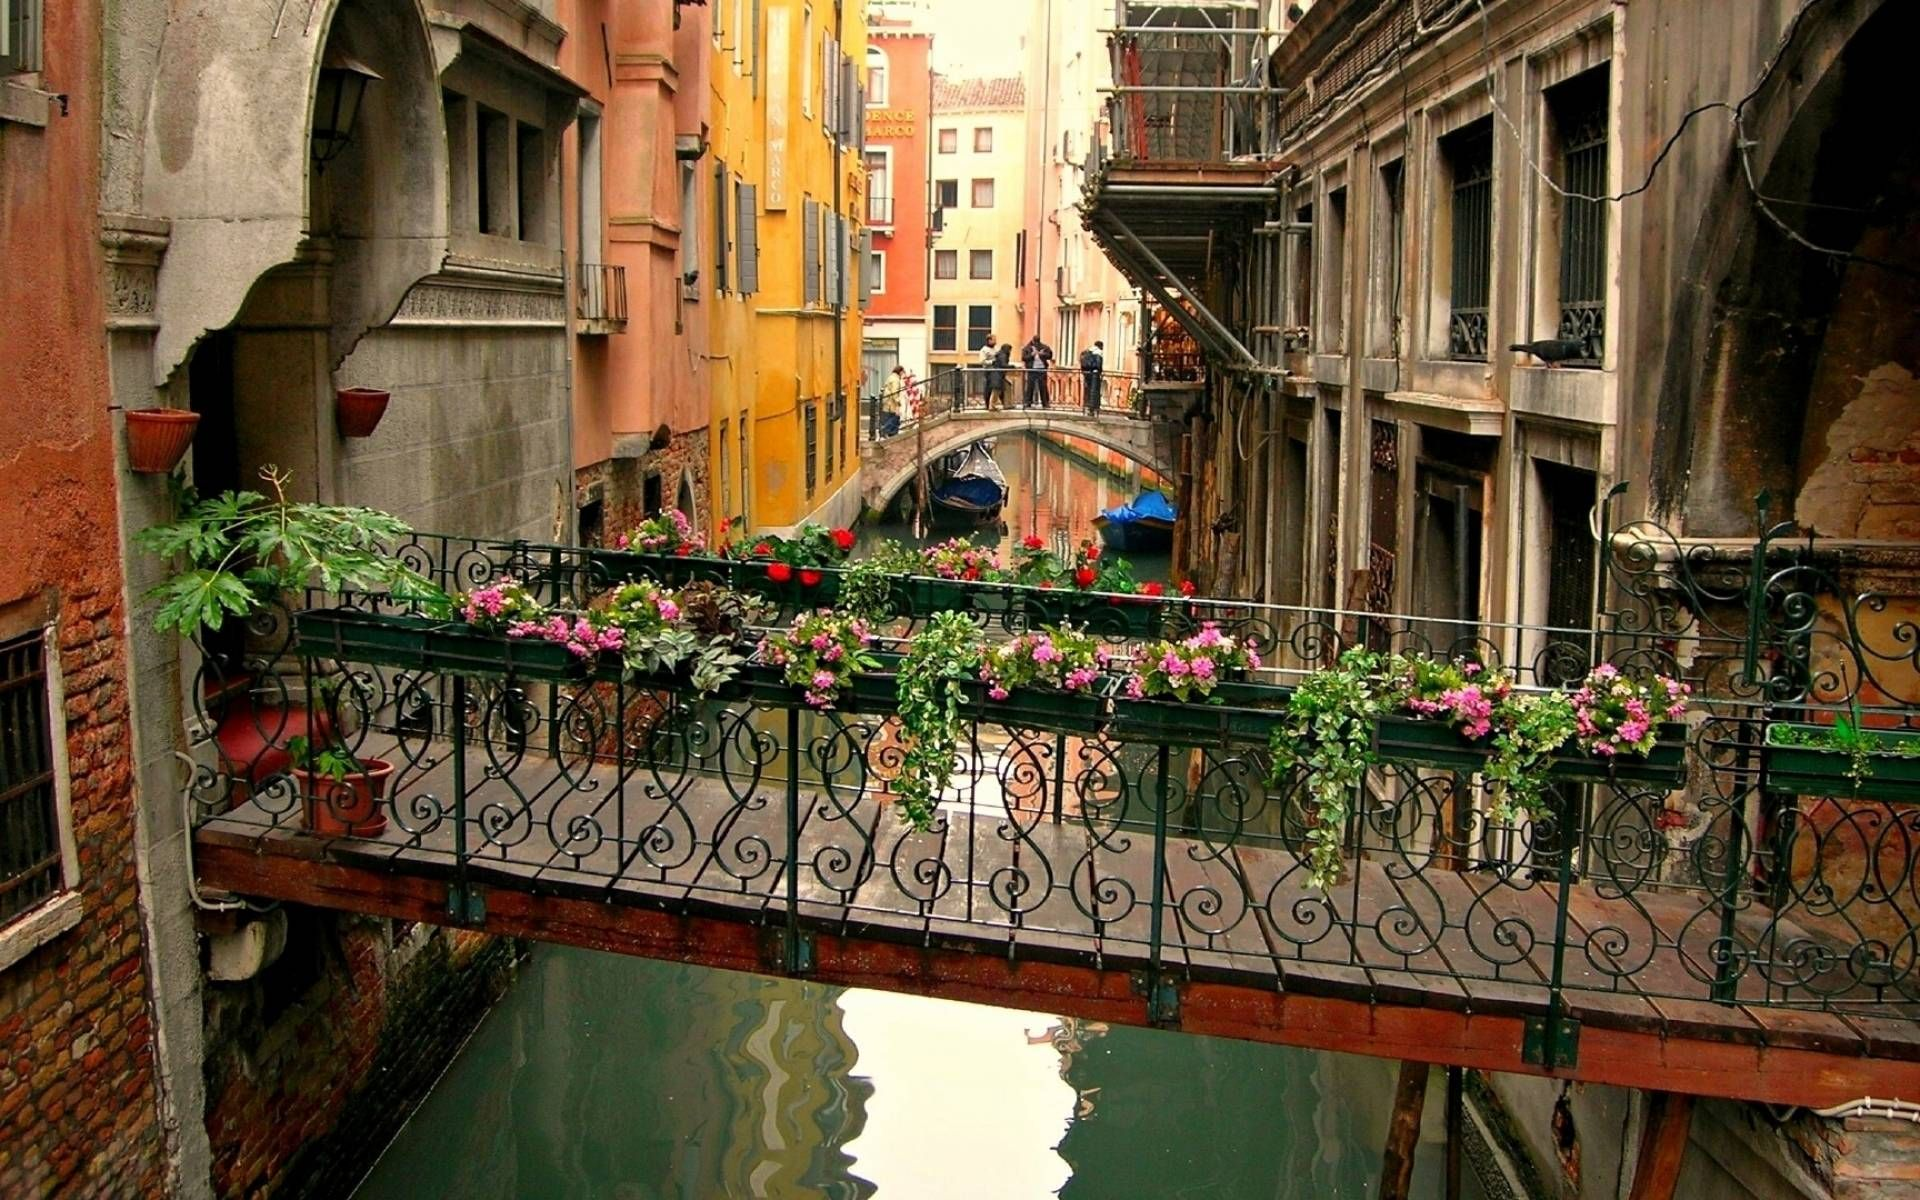 Venice Italy Desktop Wallpaper BF HD Widescreen Wallpapers For 1920x1200